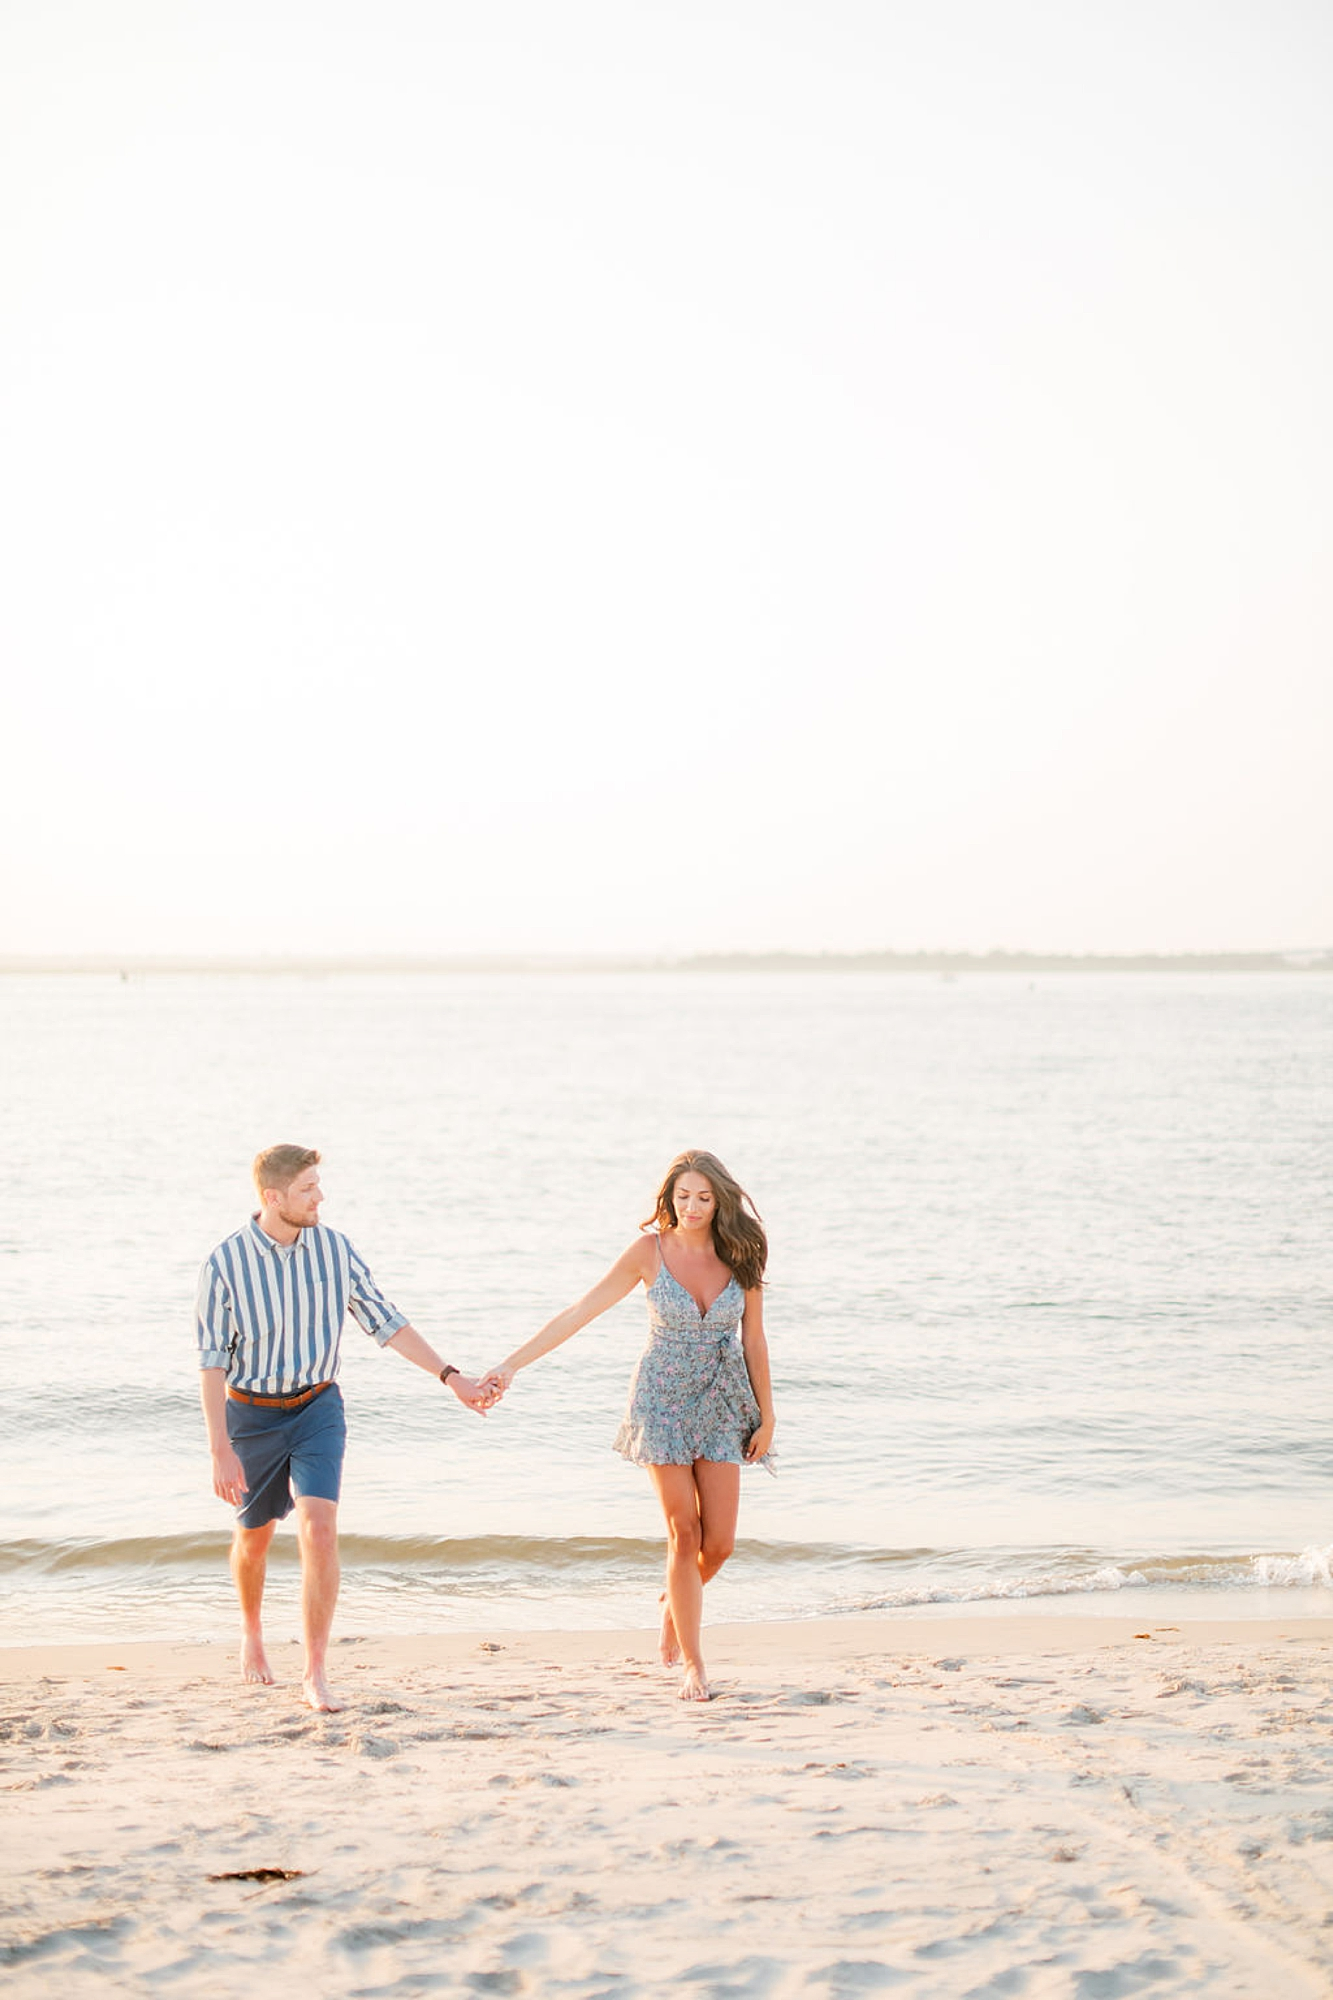 Bright and Fun Engagement Photography in Ocean City NJ by Magdalena Studios 0012